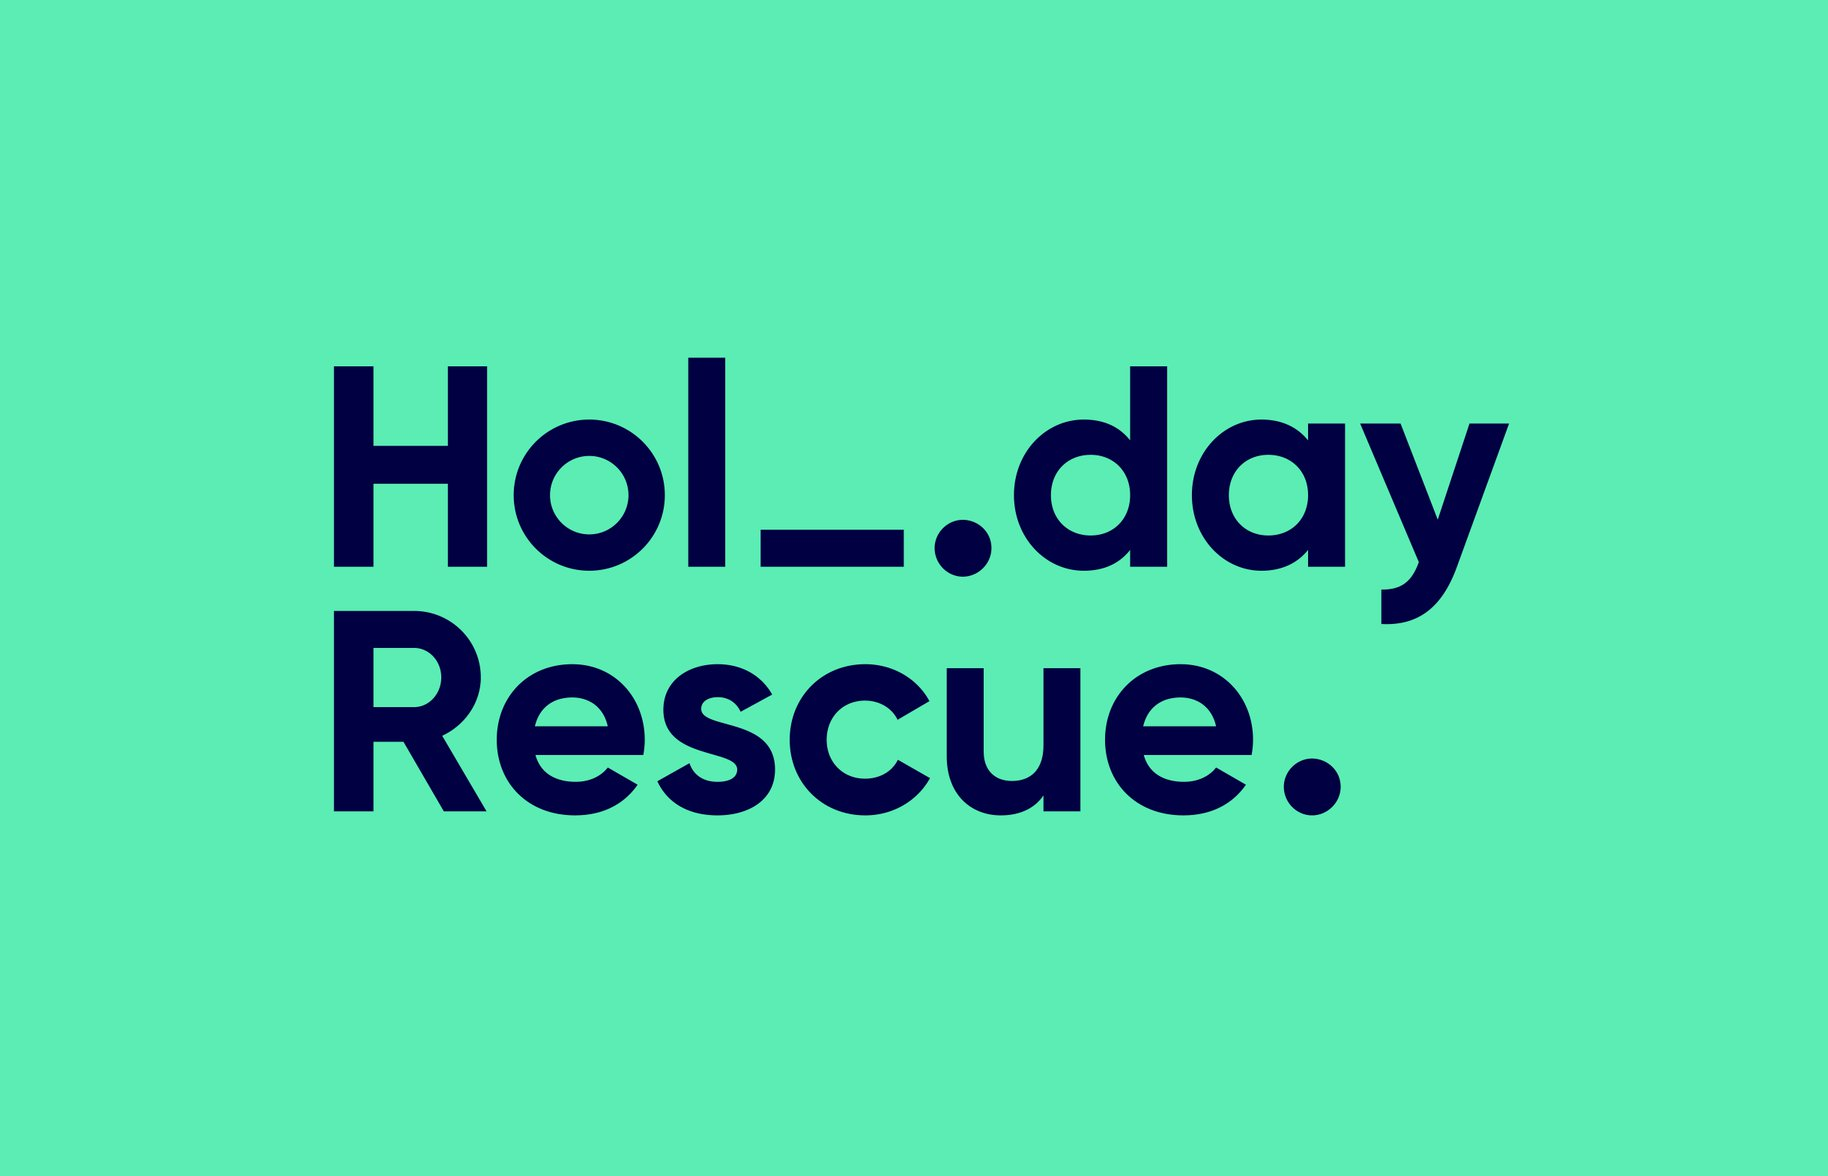 Holiday Rescue image